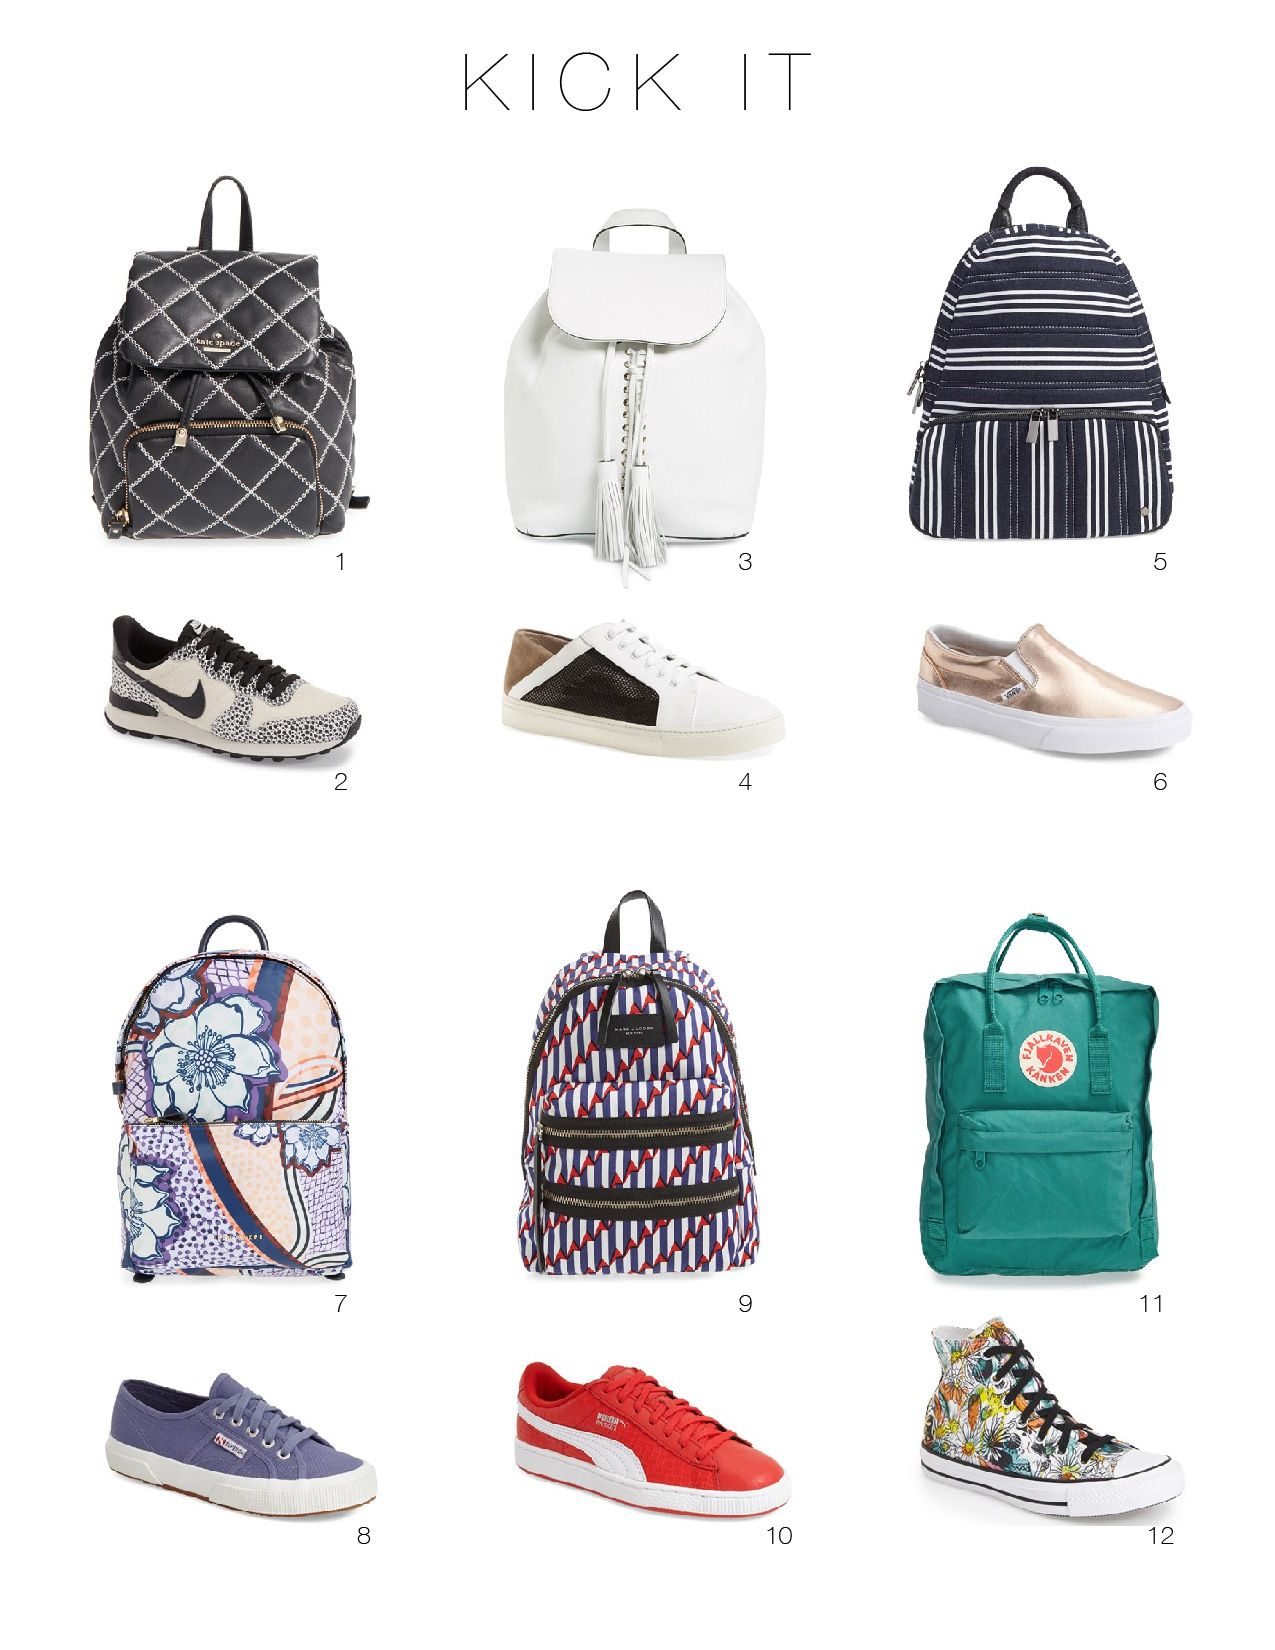 Spring Backpacks and Cool Shoes: They'll Update Even Your Most Casual Outfits